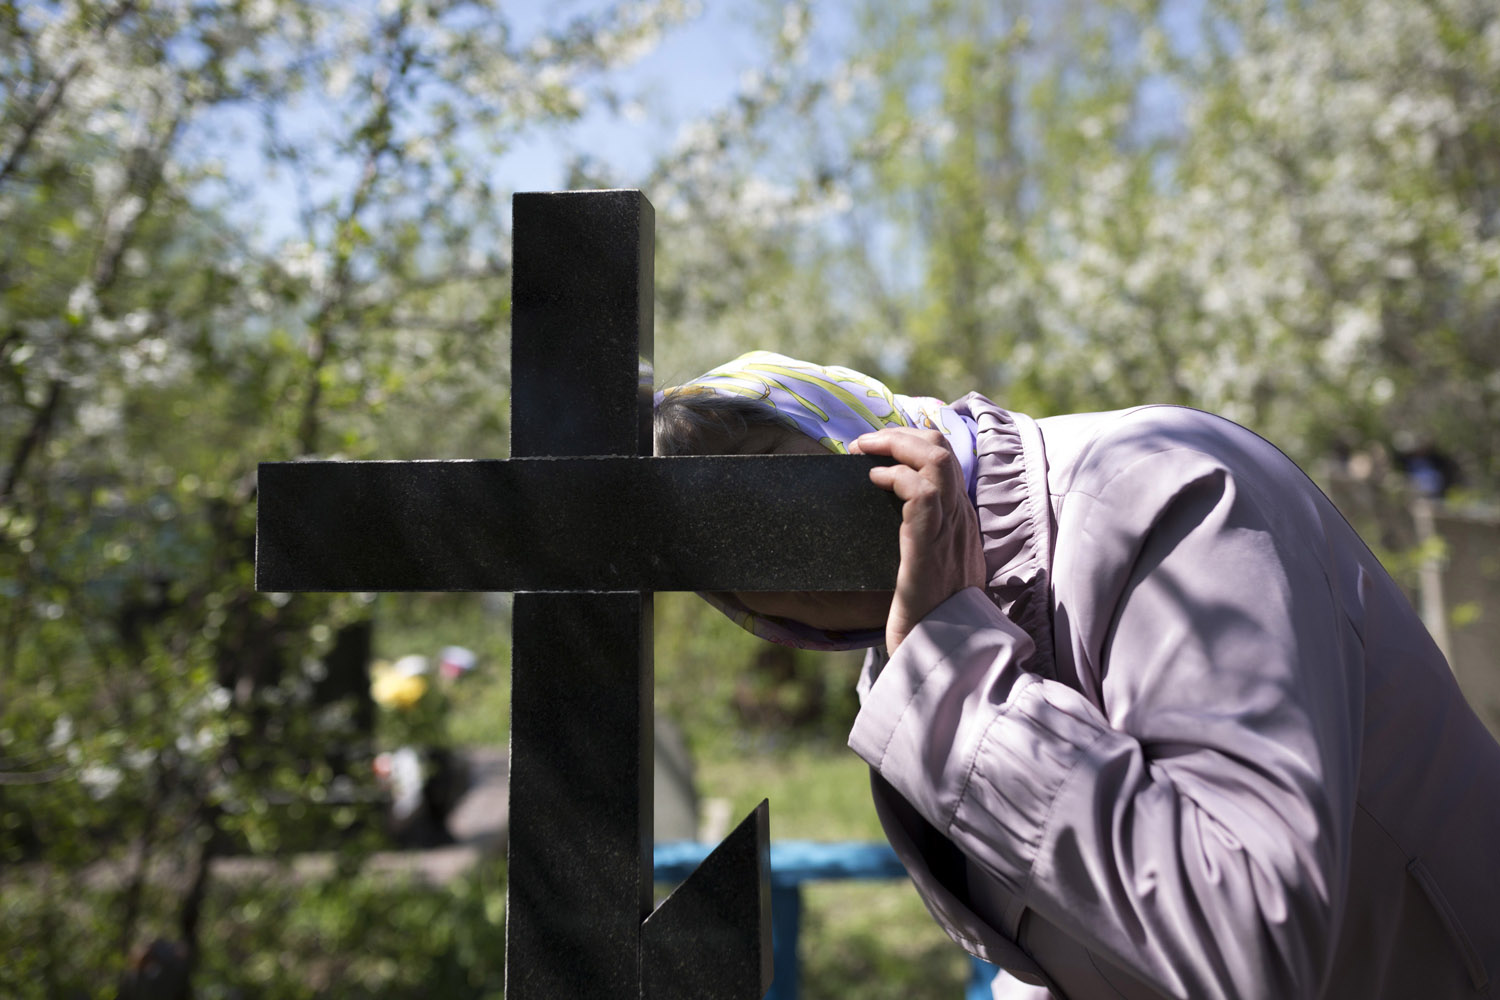 The mother of Andrey Papov, who died at the age of 34 in a mining accident, kisses his grave on the first sunday after Easter, when Russian orthodox families visit their dead relatives, holding a picnic on their graves to spend some more time together.